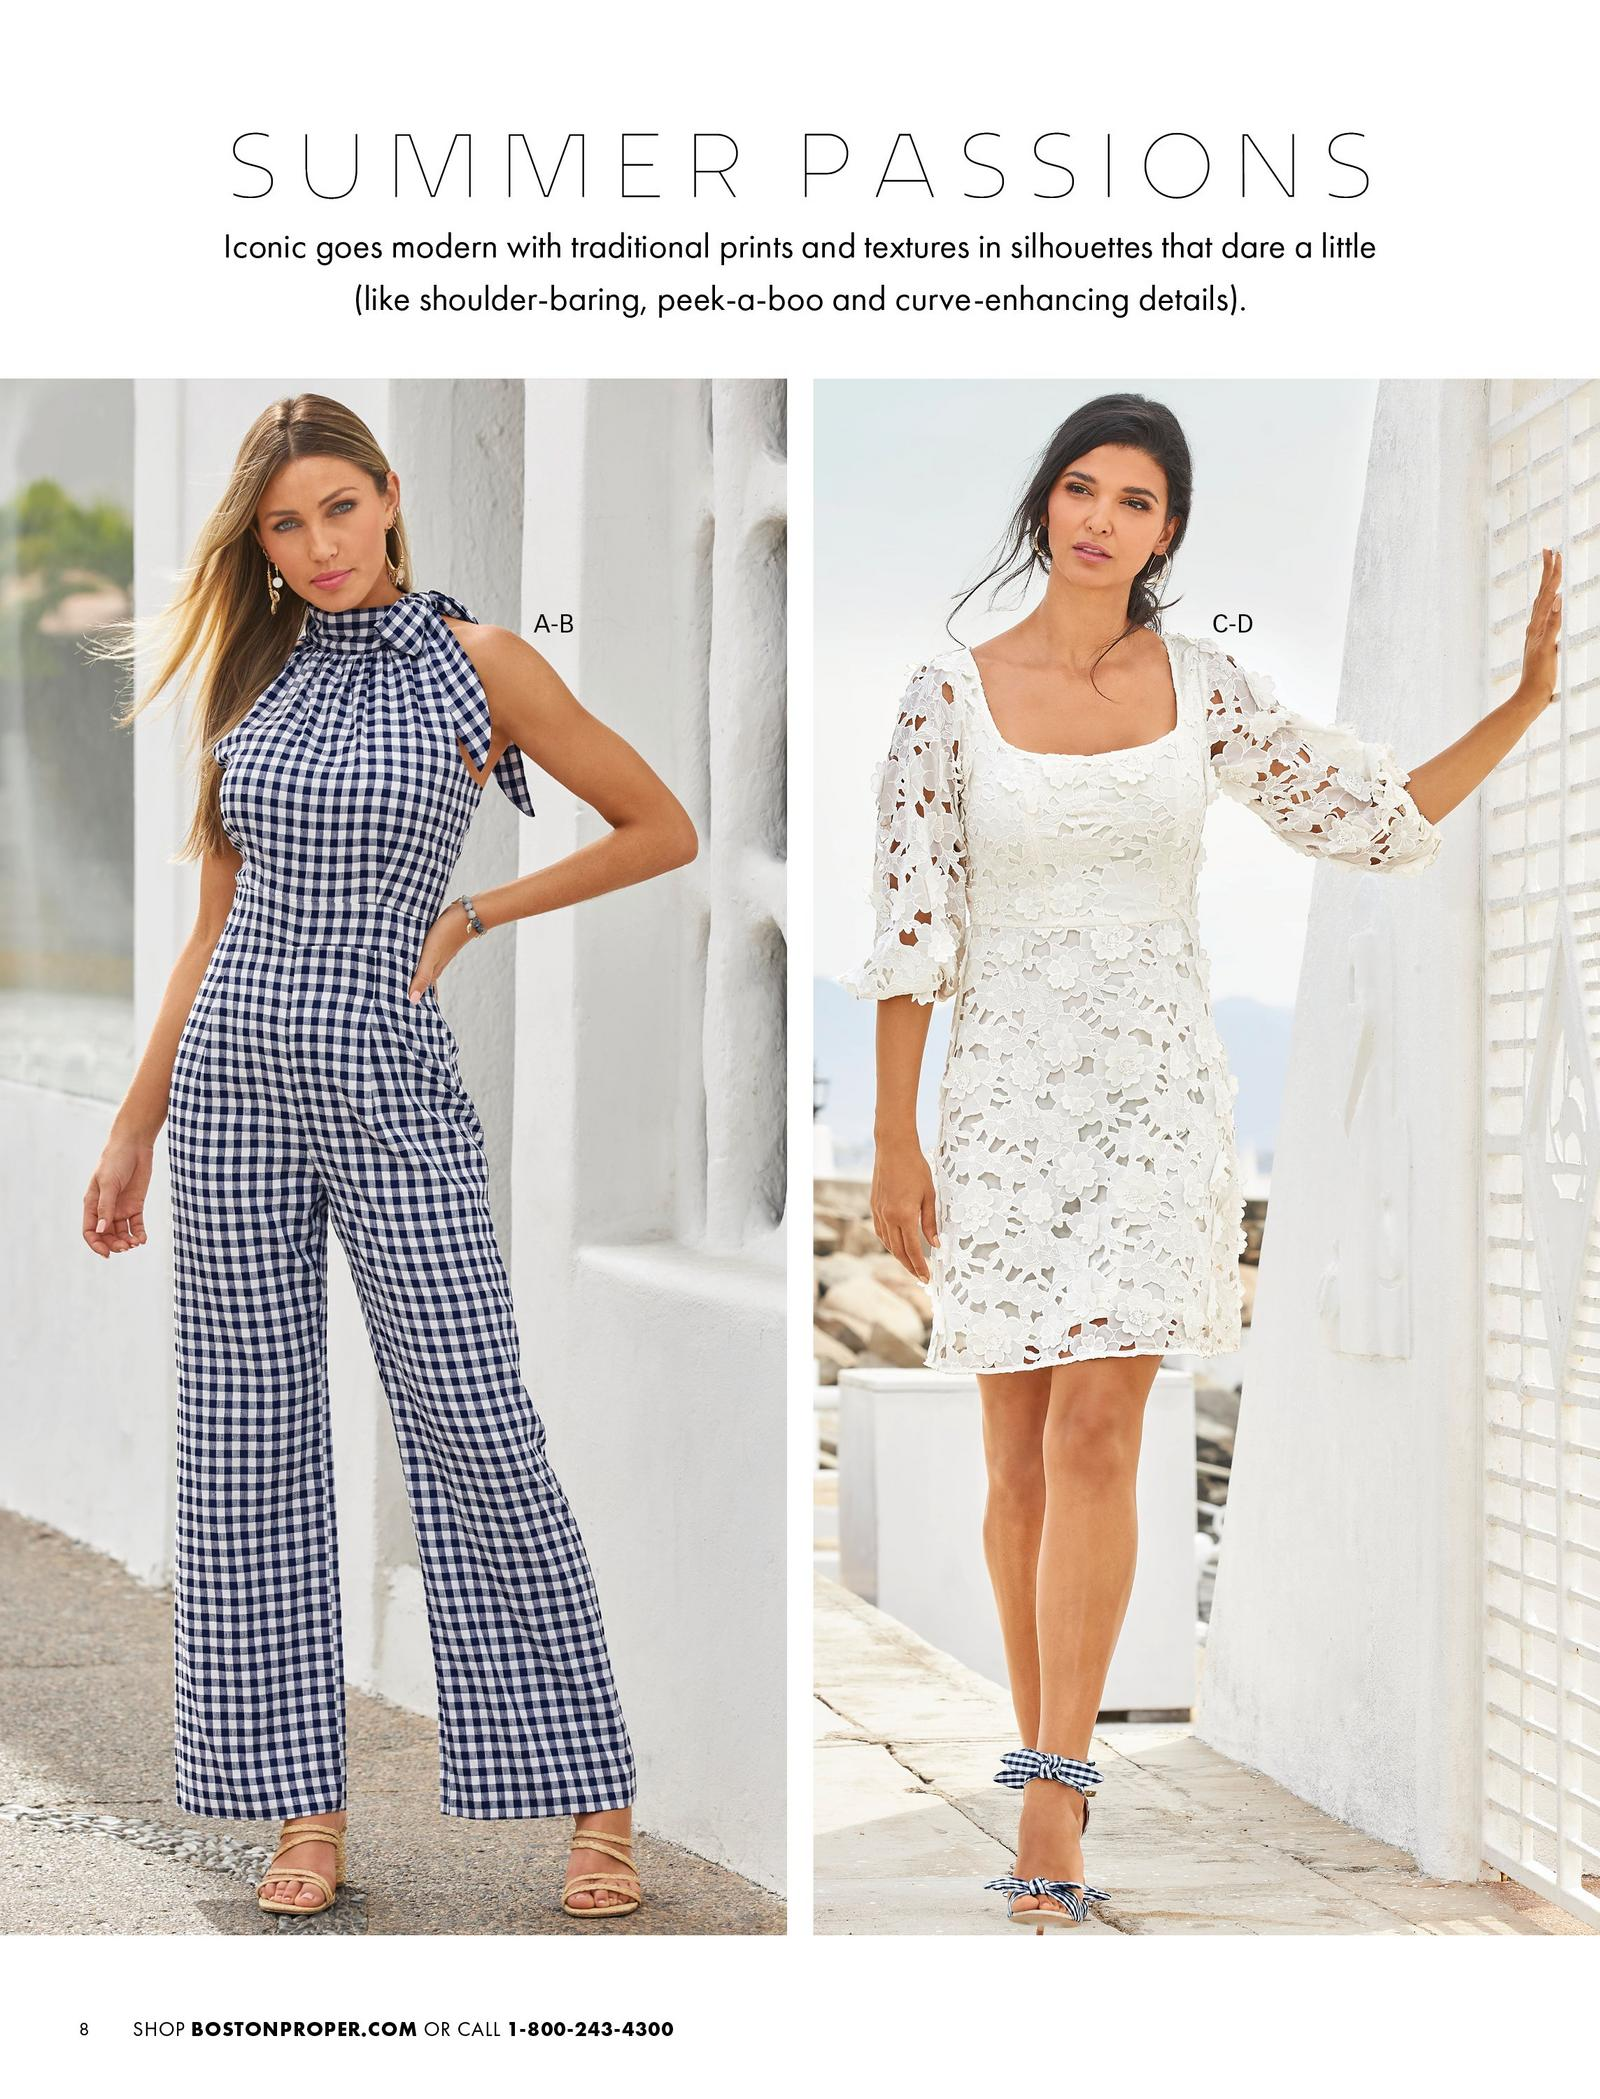 left model wearing a navy gingham high-neck jumpsuit with a bow at the neckline and strappy raffia heels. right model wearing a white lace puff-sleeve dress and navy gingham bow heels.